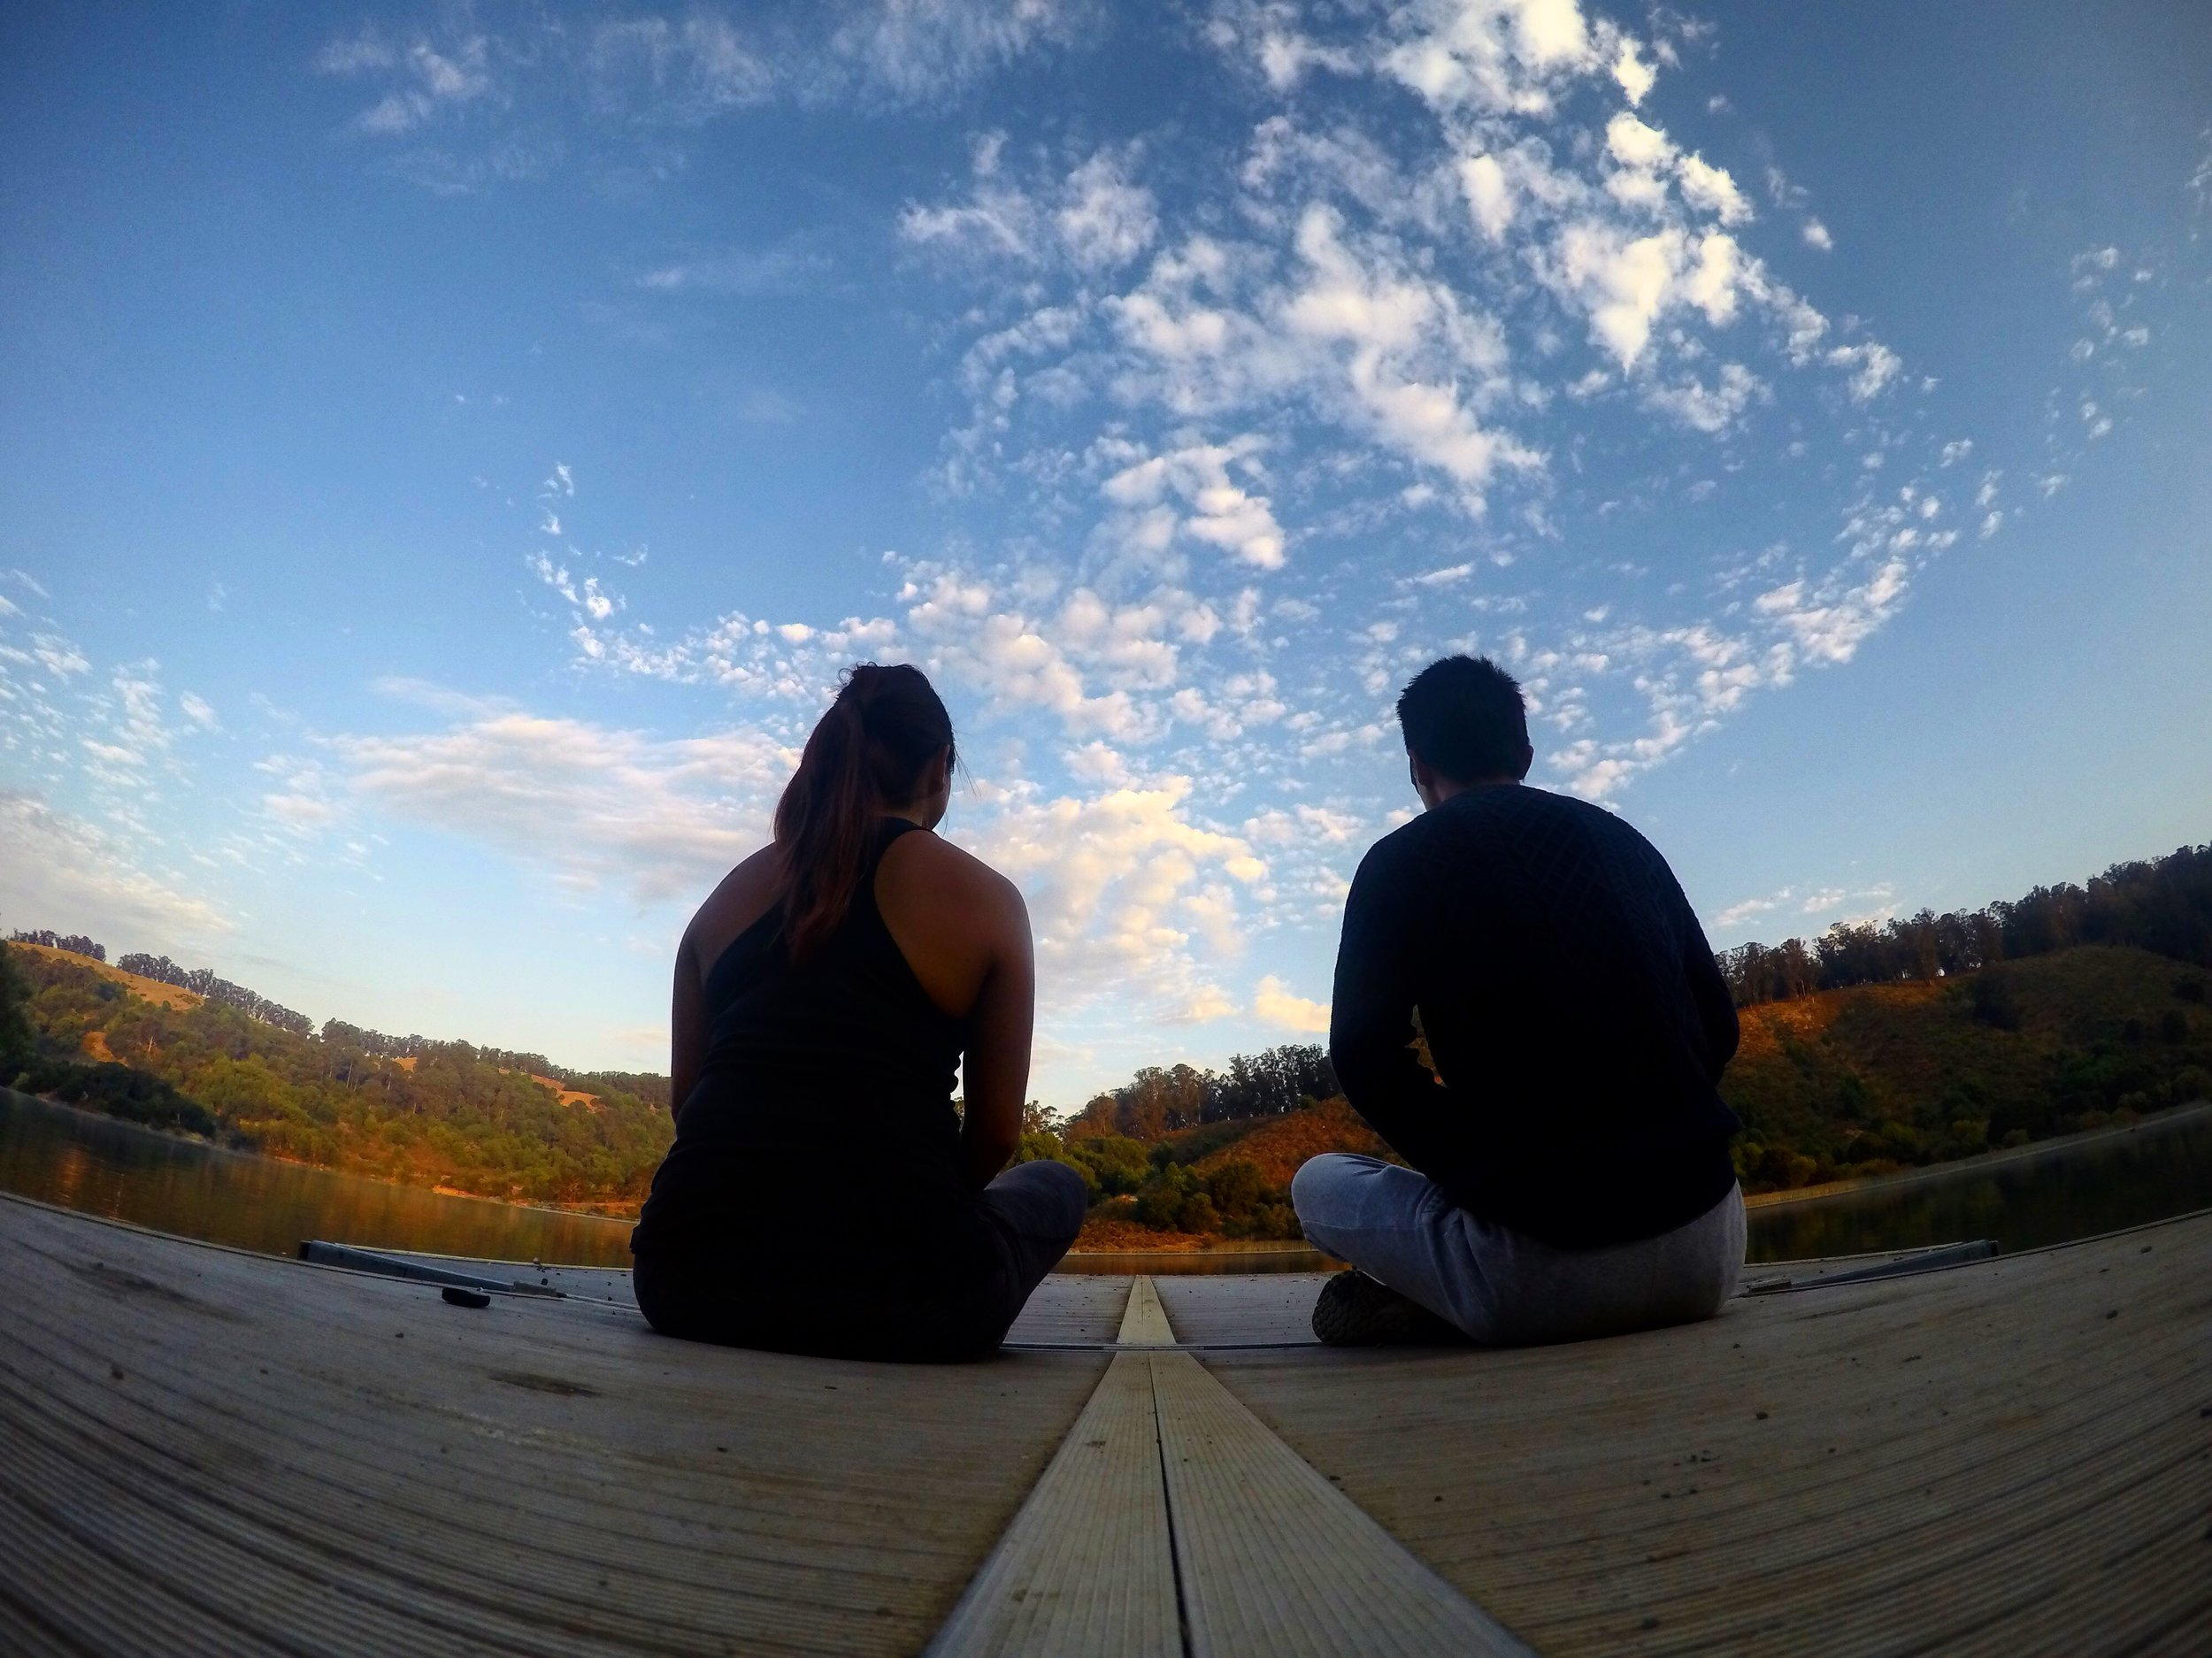 Sunrise nutrition coaching and guided meditation/visualization in nature at Lake Chabot Regional Park.